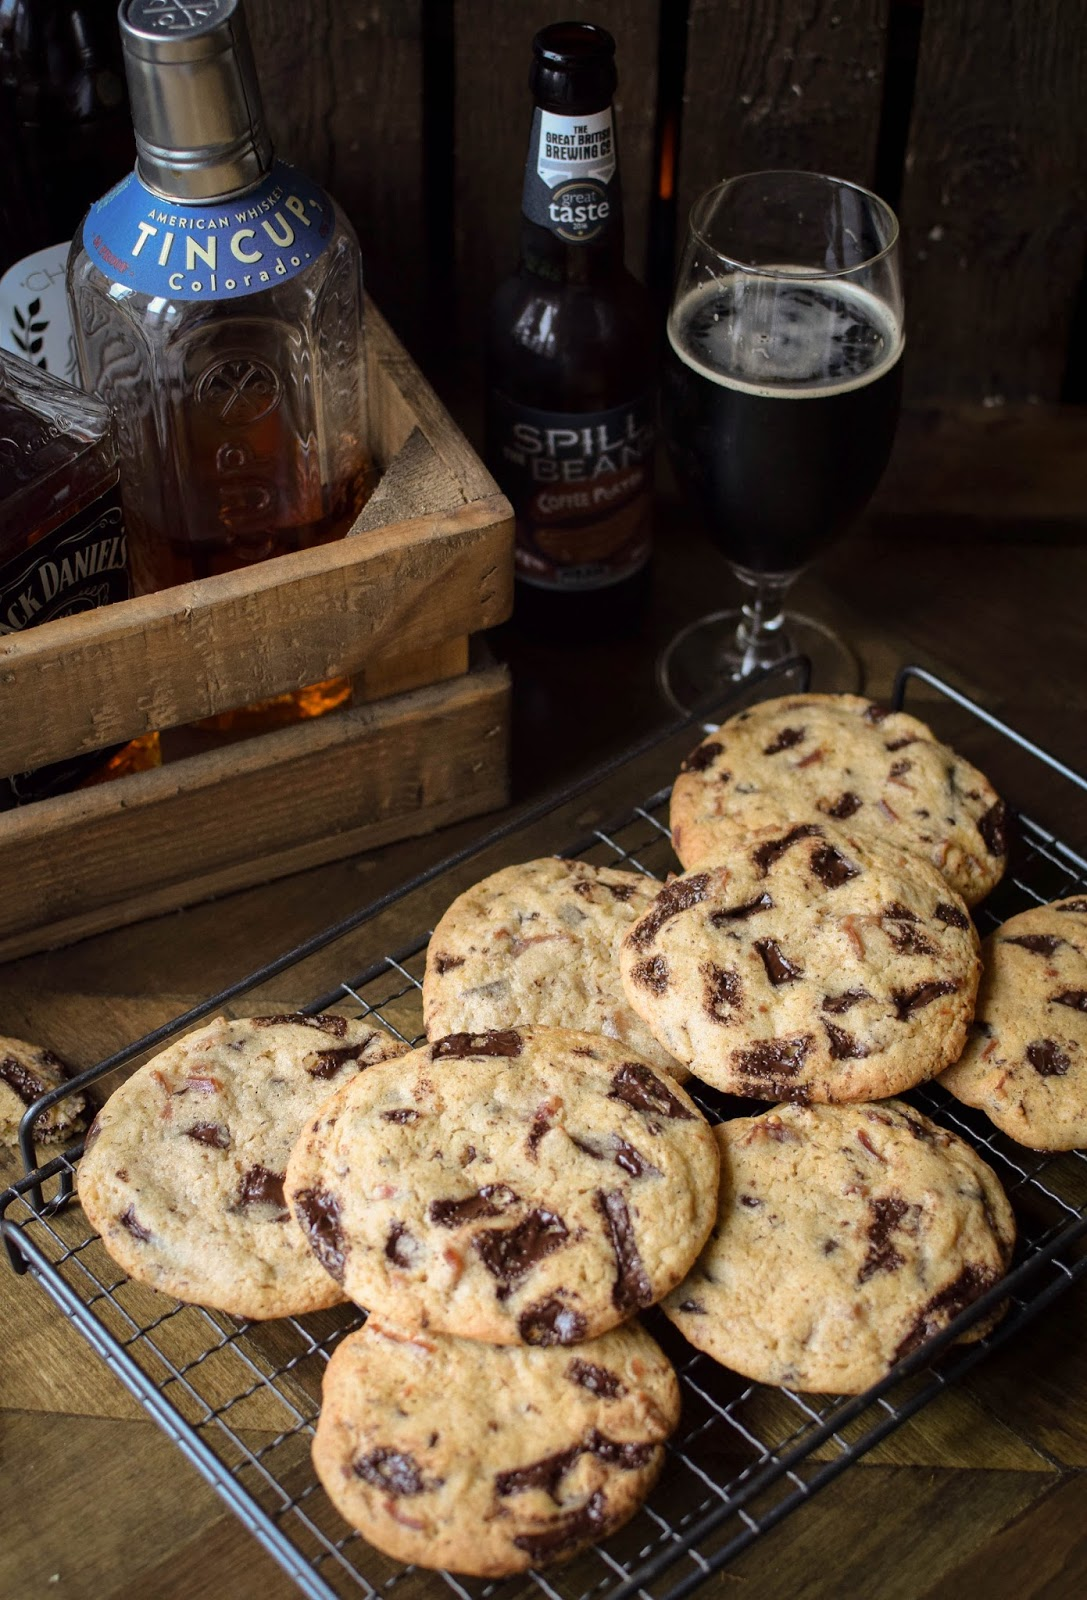 Forget about the usual boring pair of socks, treat your dad to these beer and bacon cookies this Fathers Day.